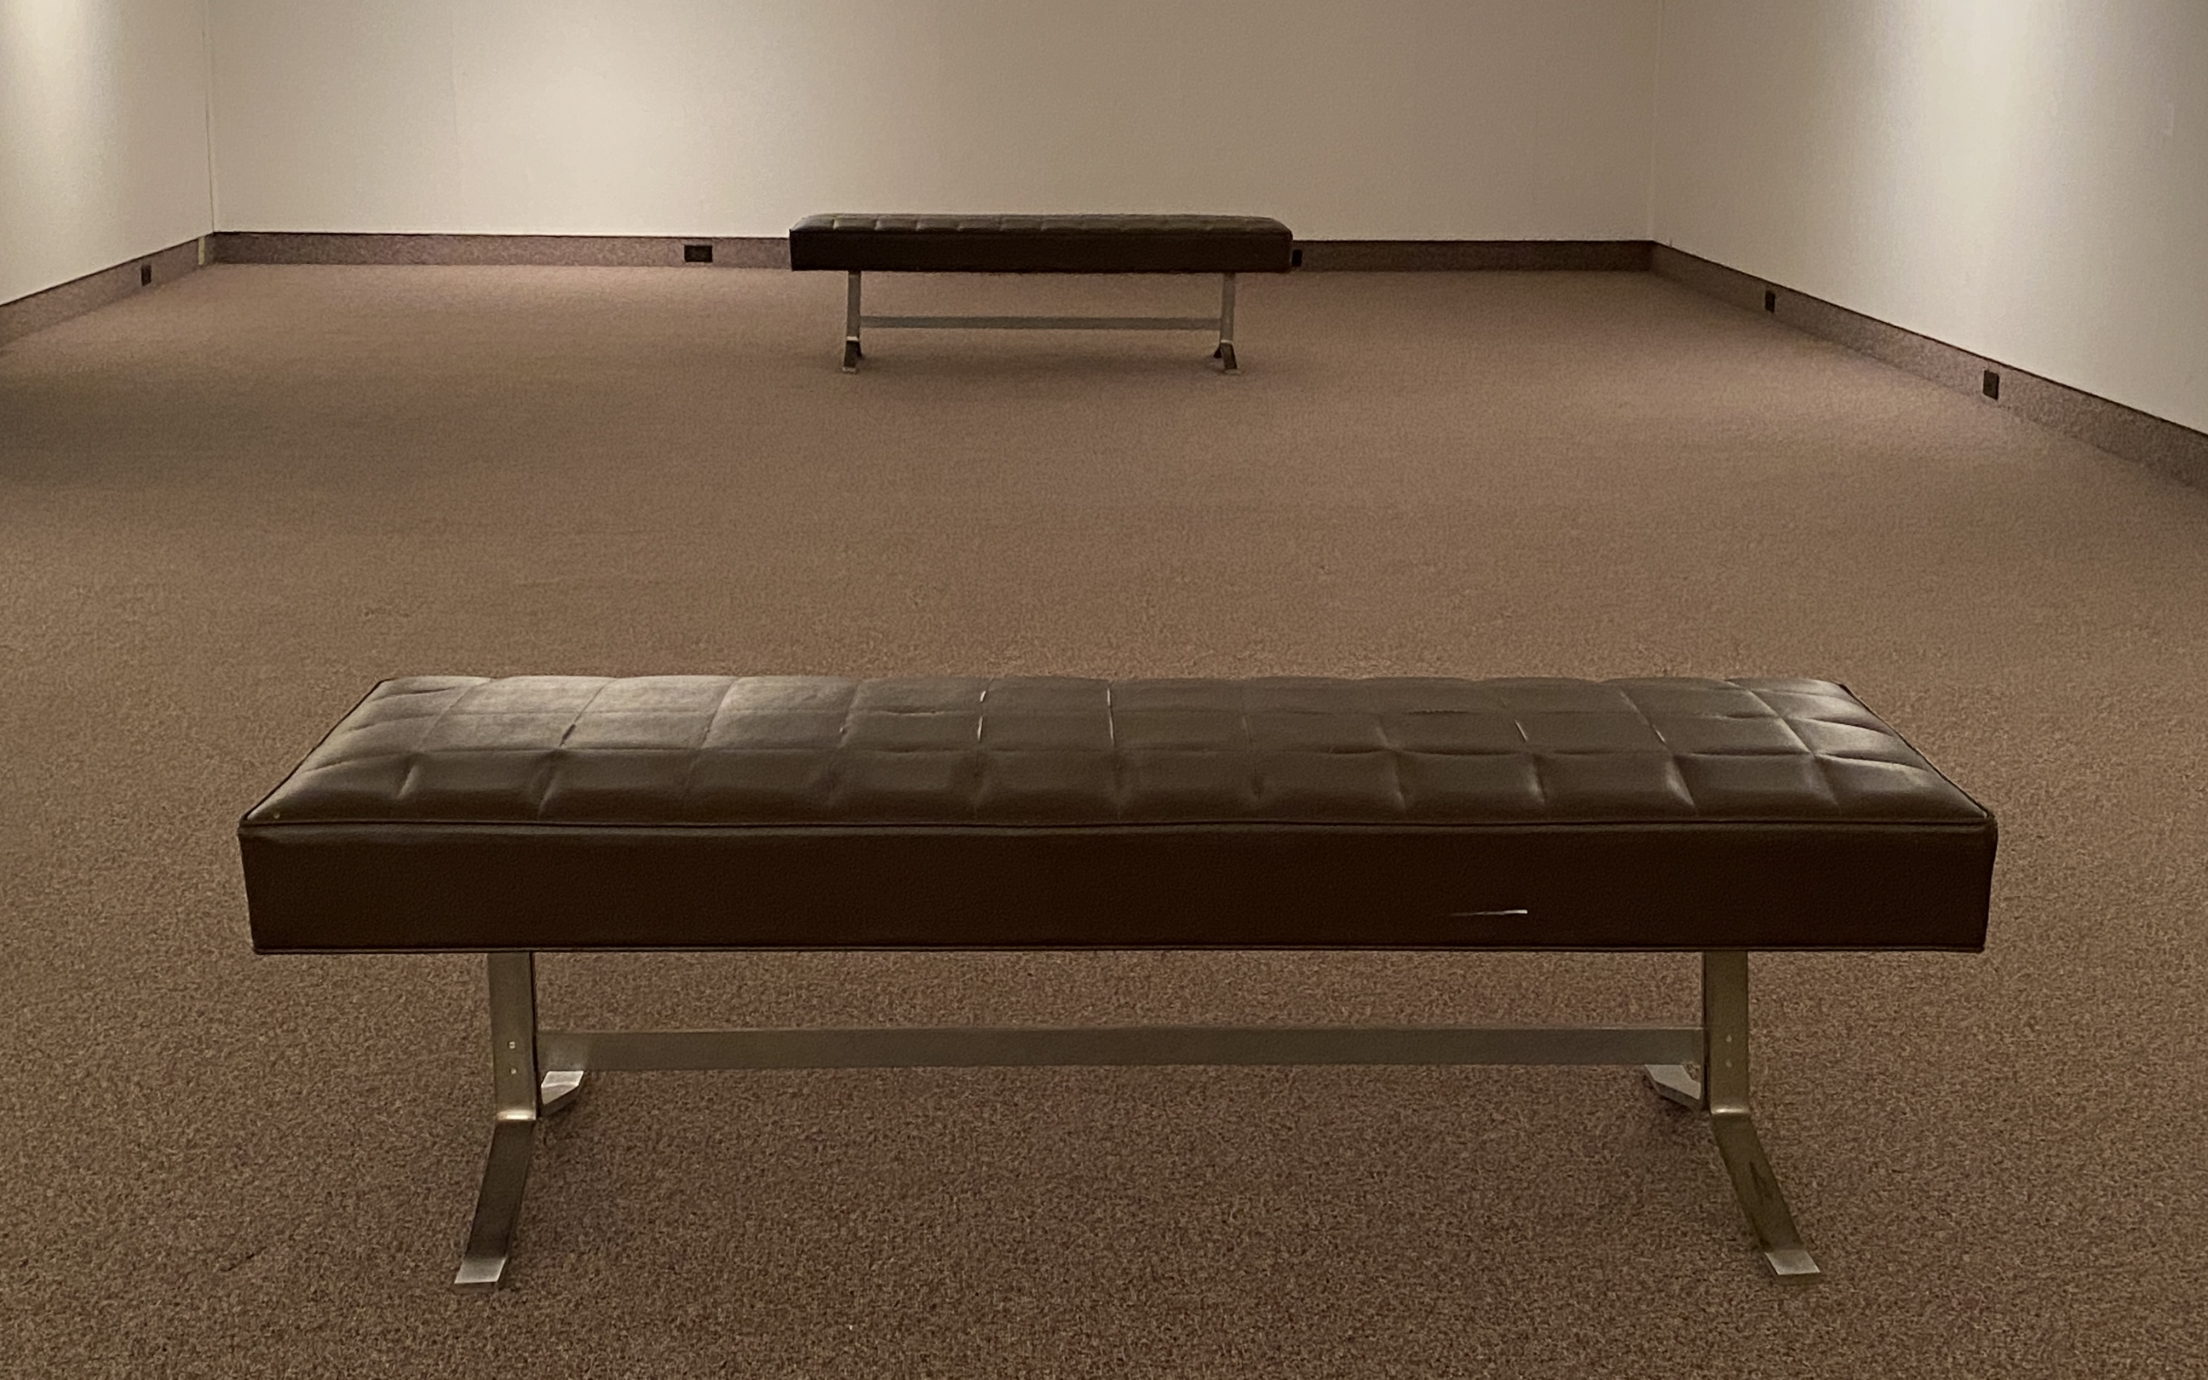 empty gallery with two benches